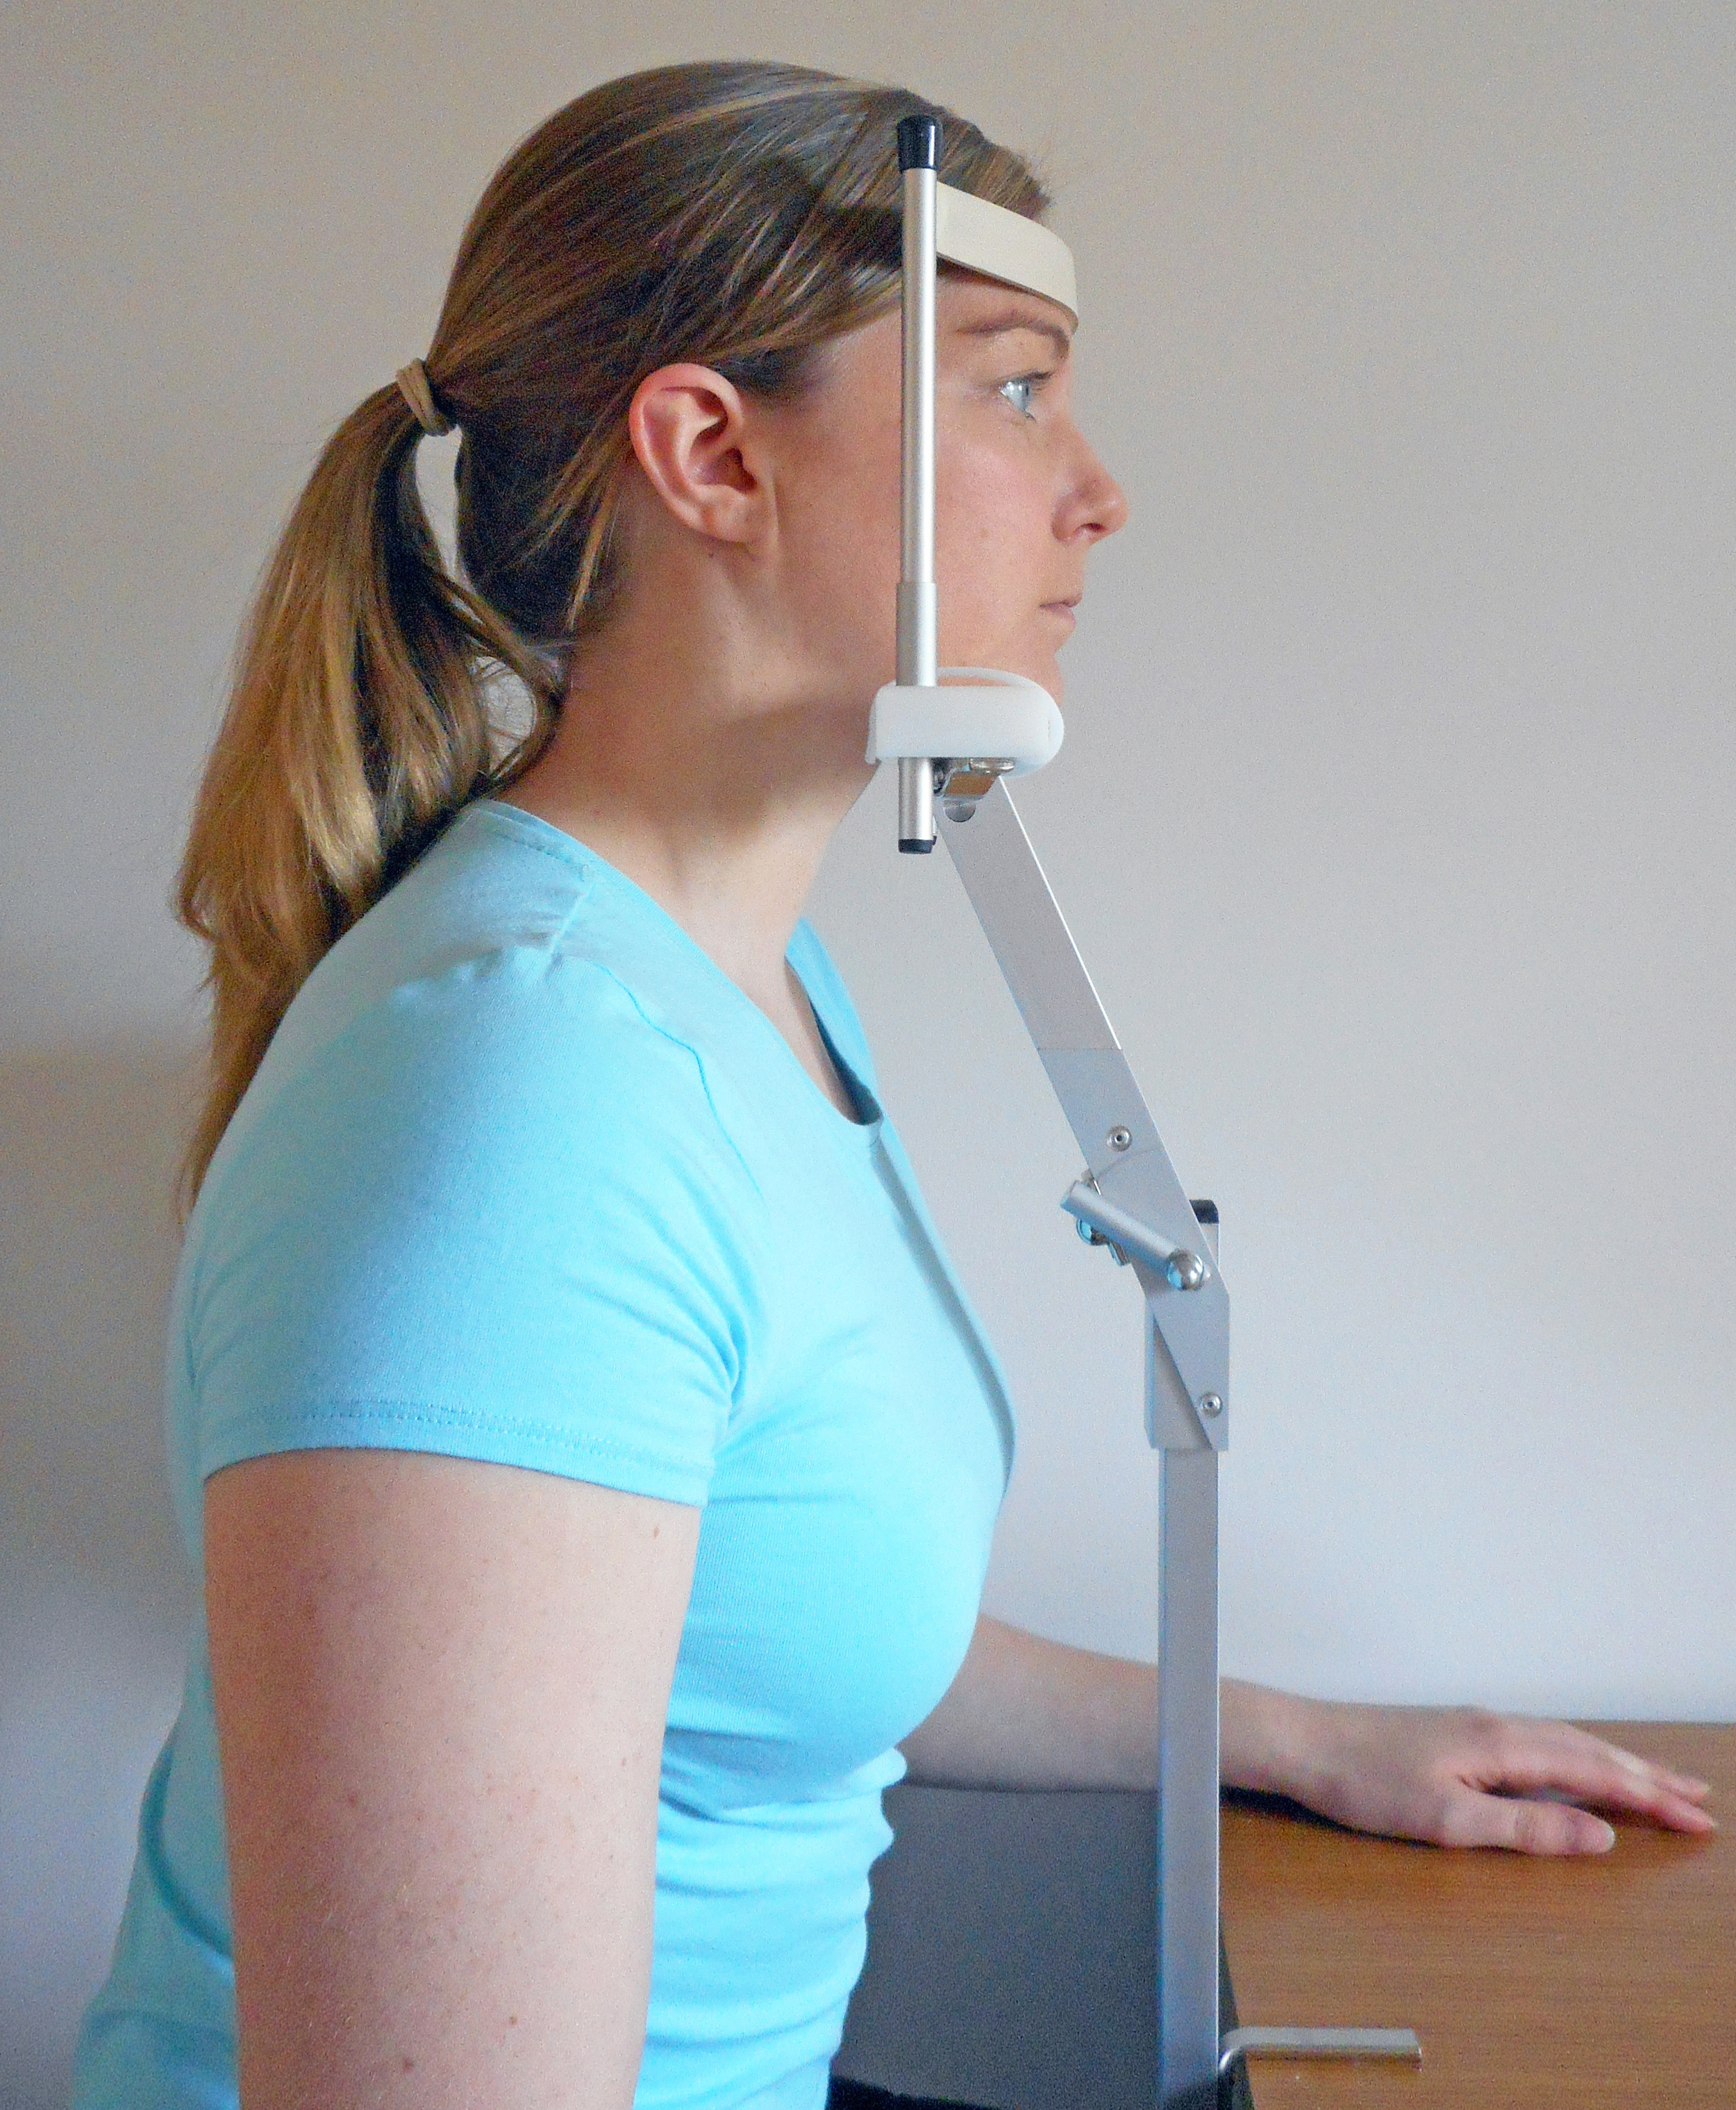 The RehaCom Chin Rest is helpful for visual field work